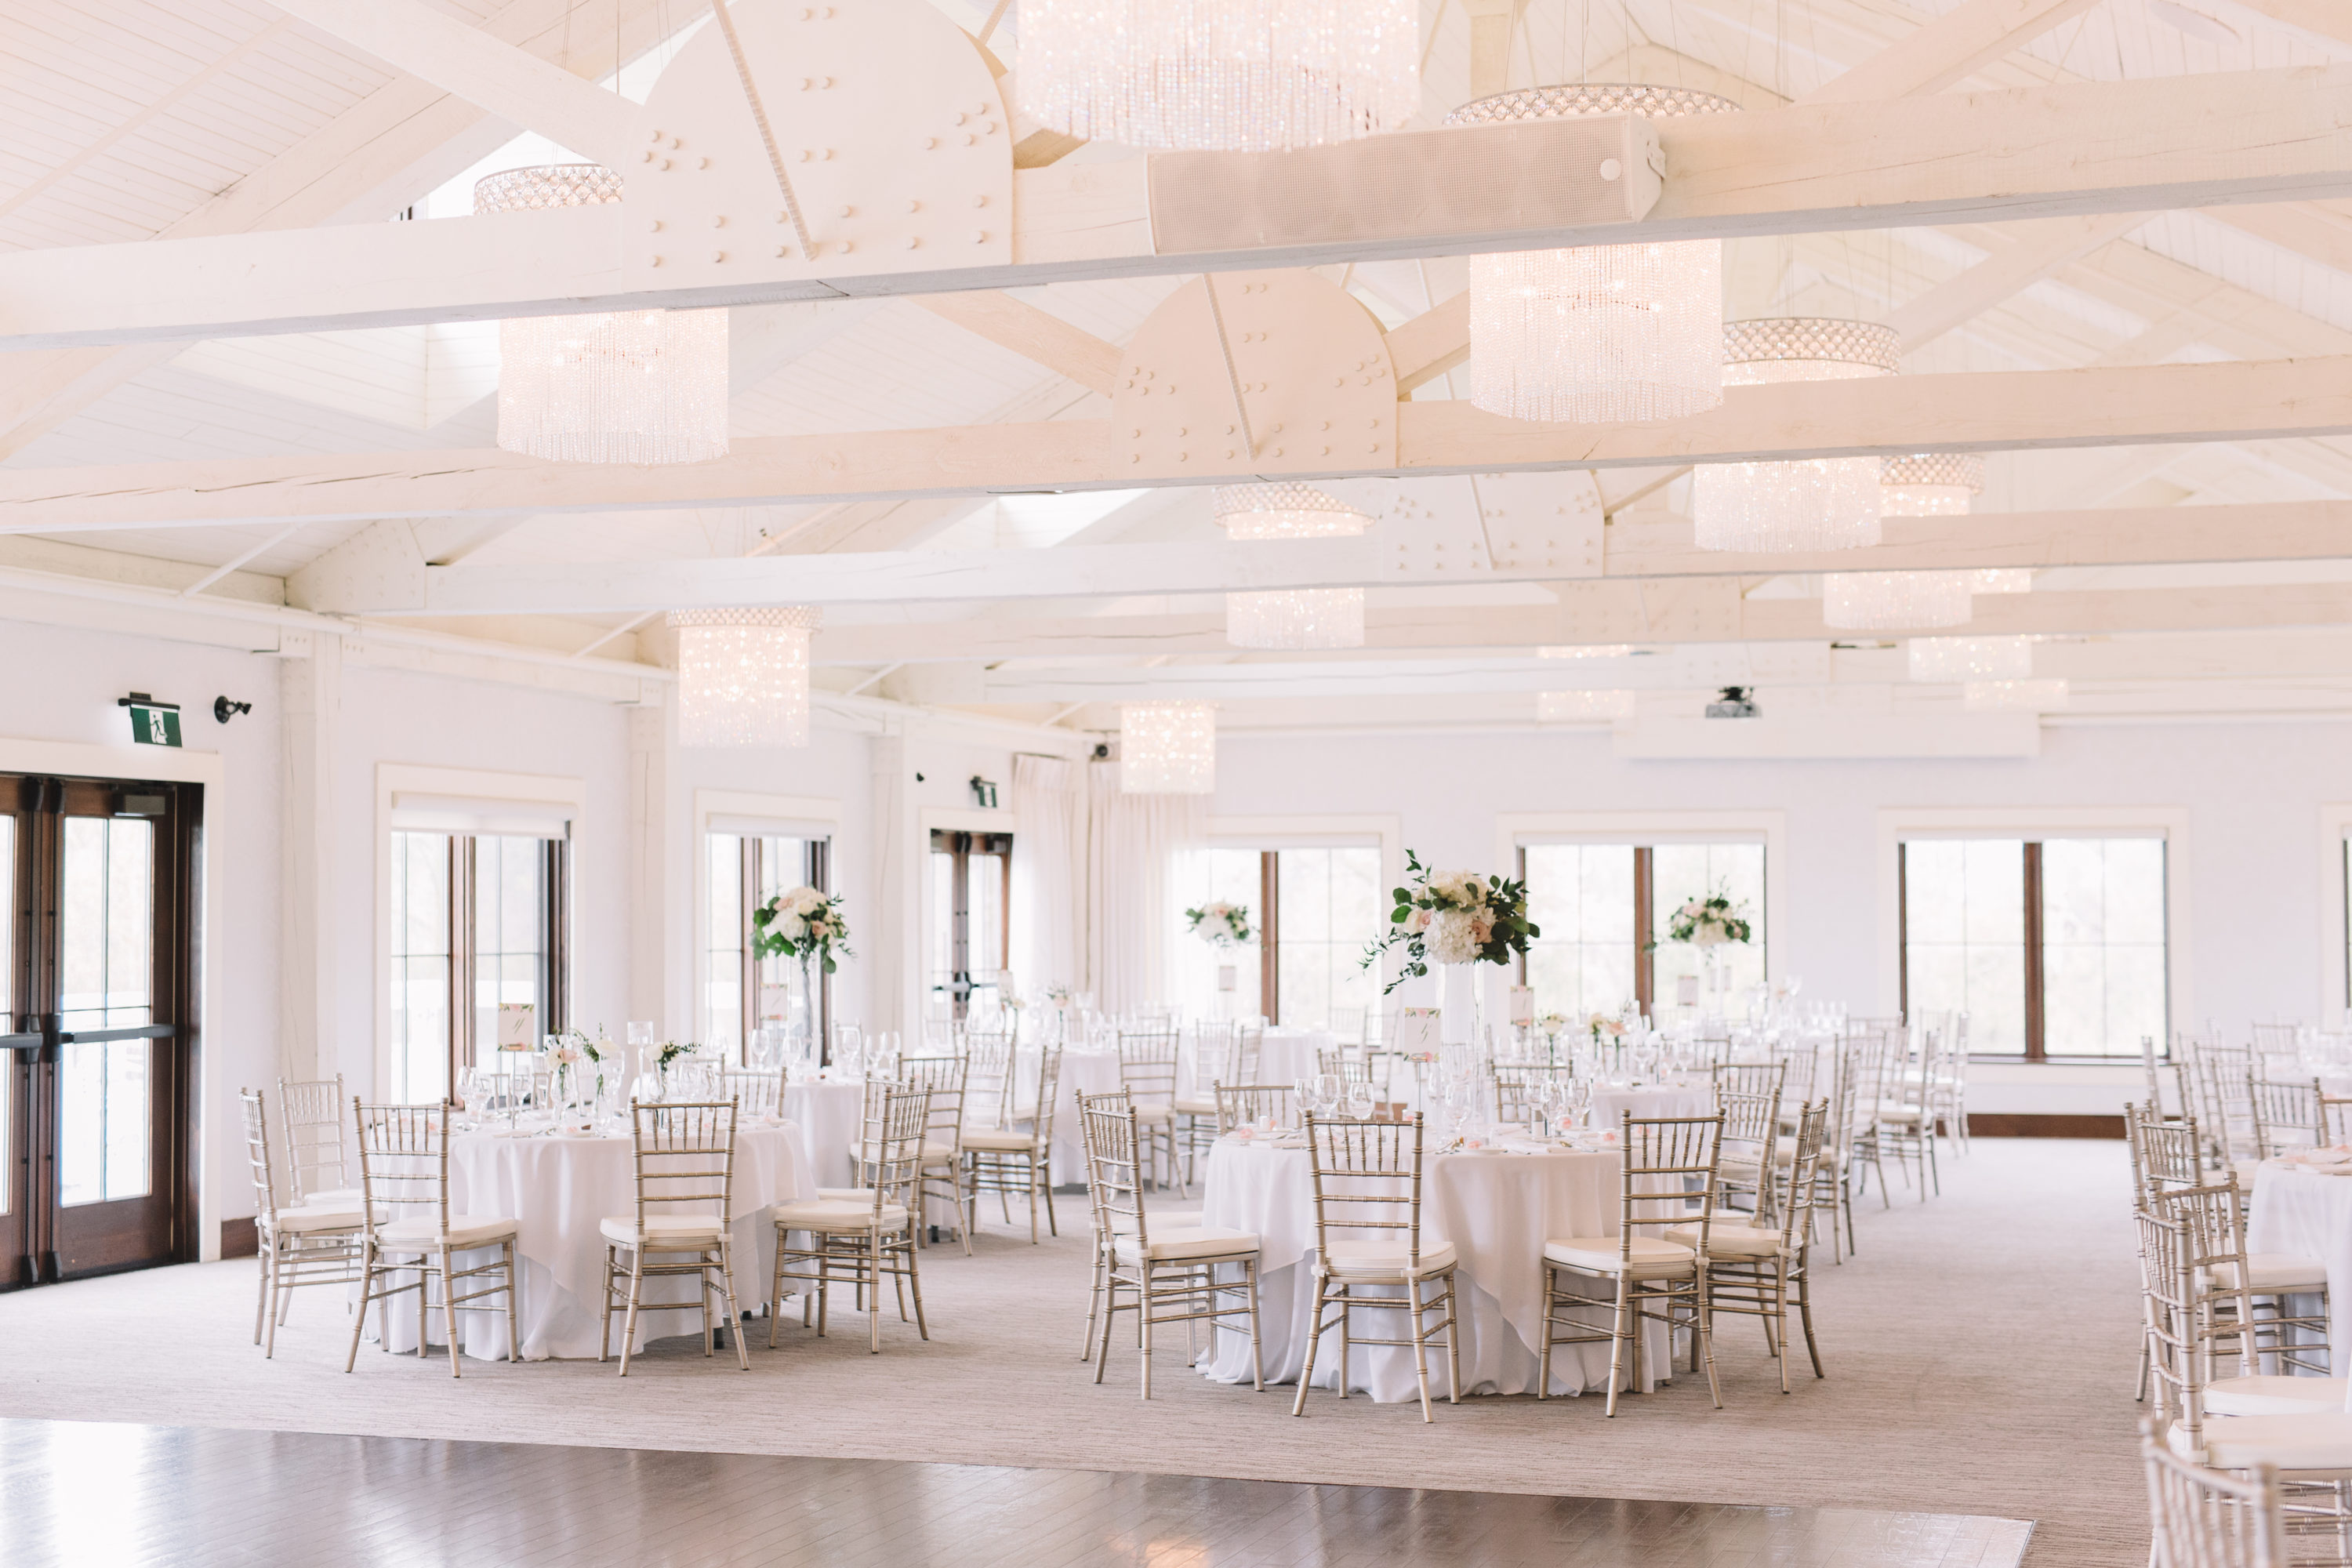 Forestview Room and Terrace Wedding at Whistle Bear